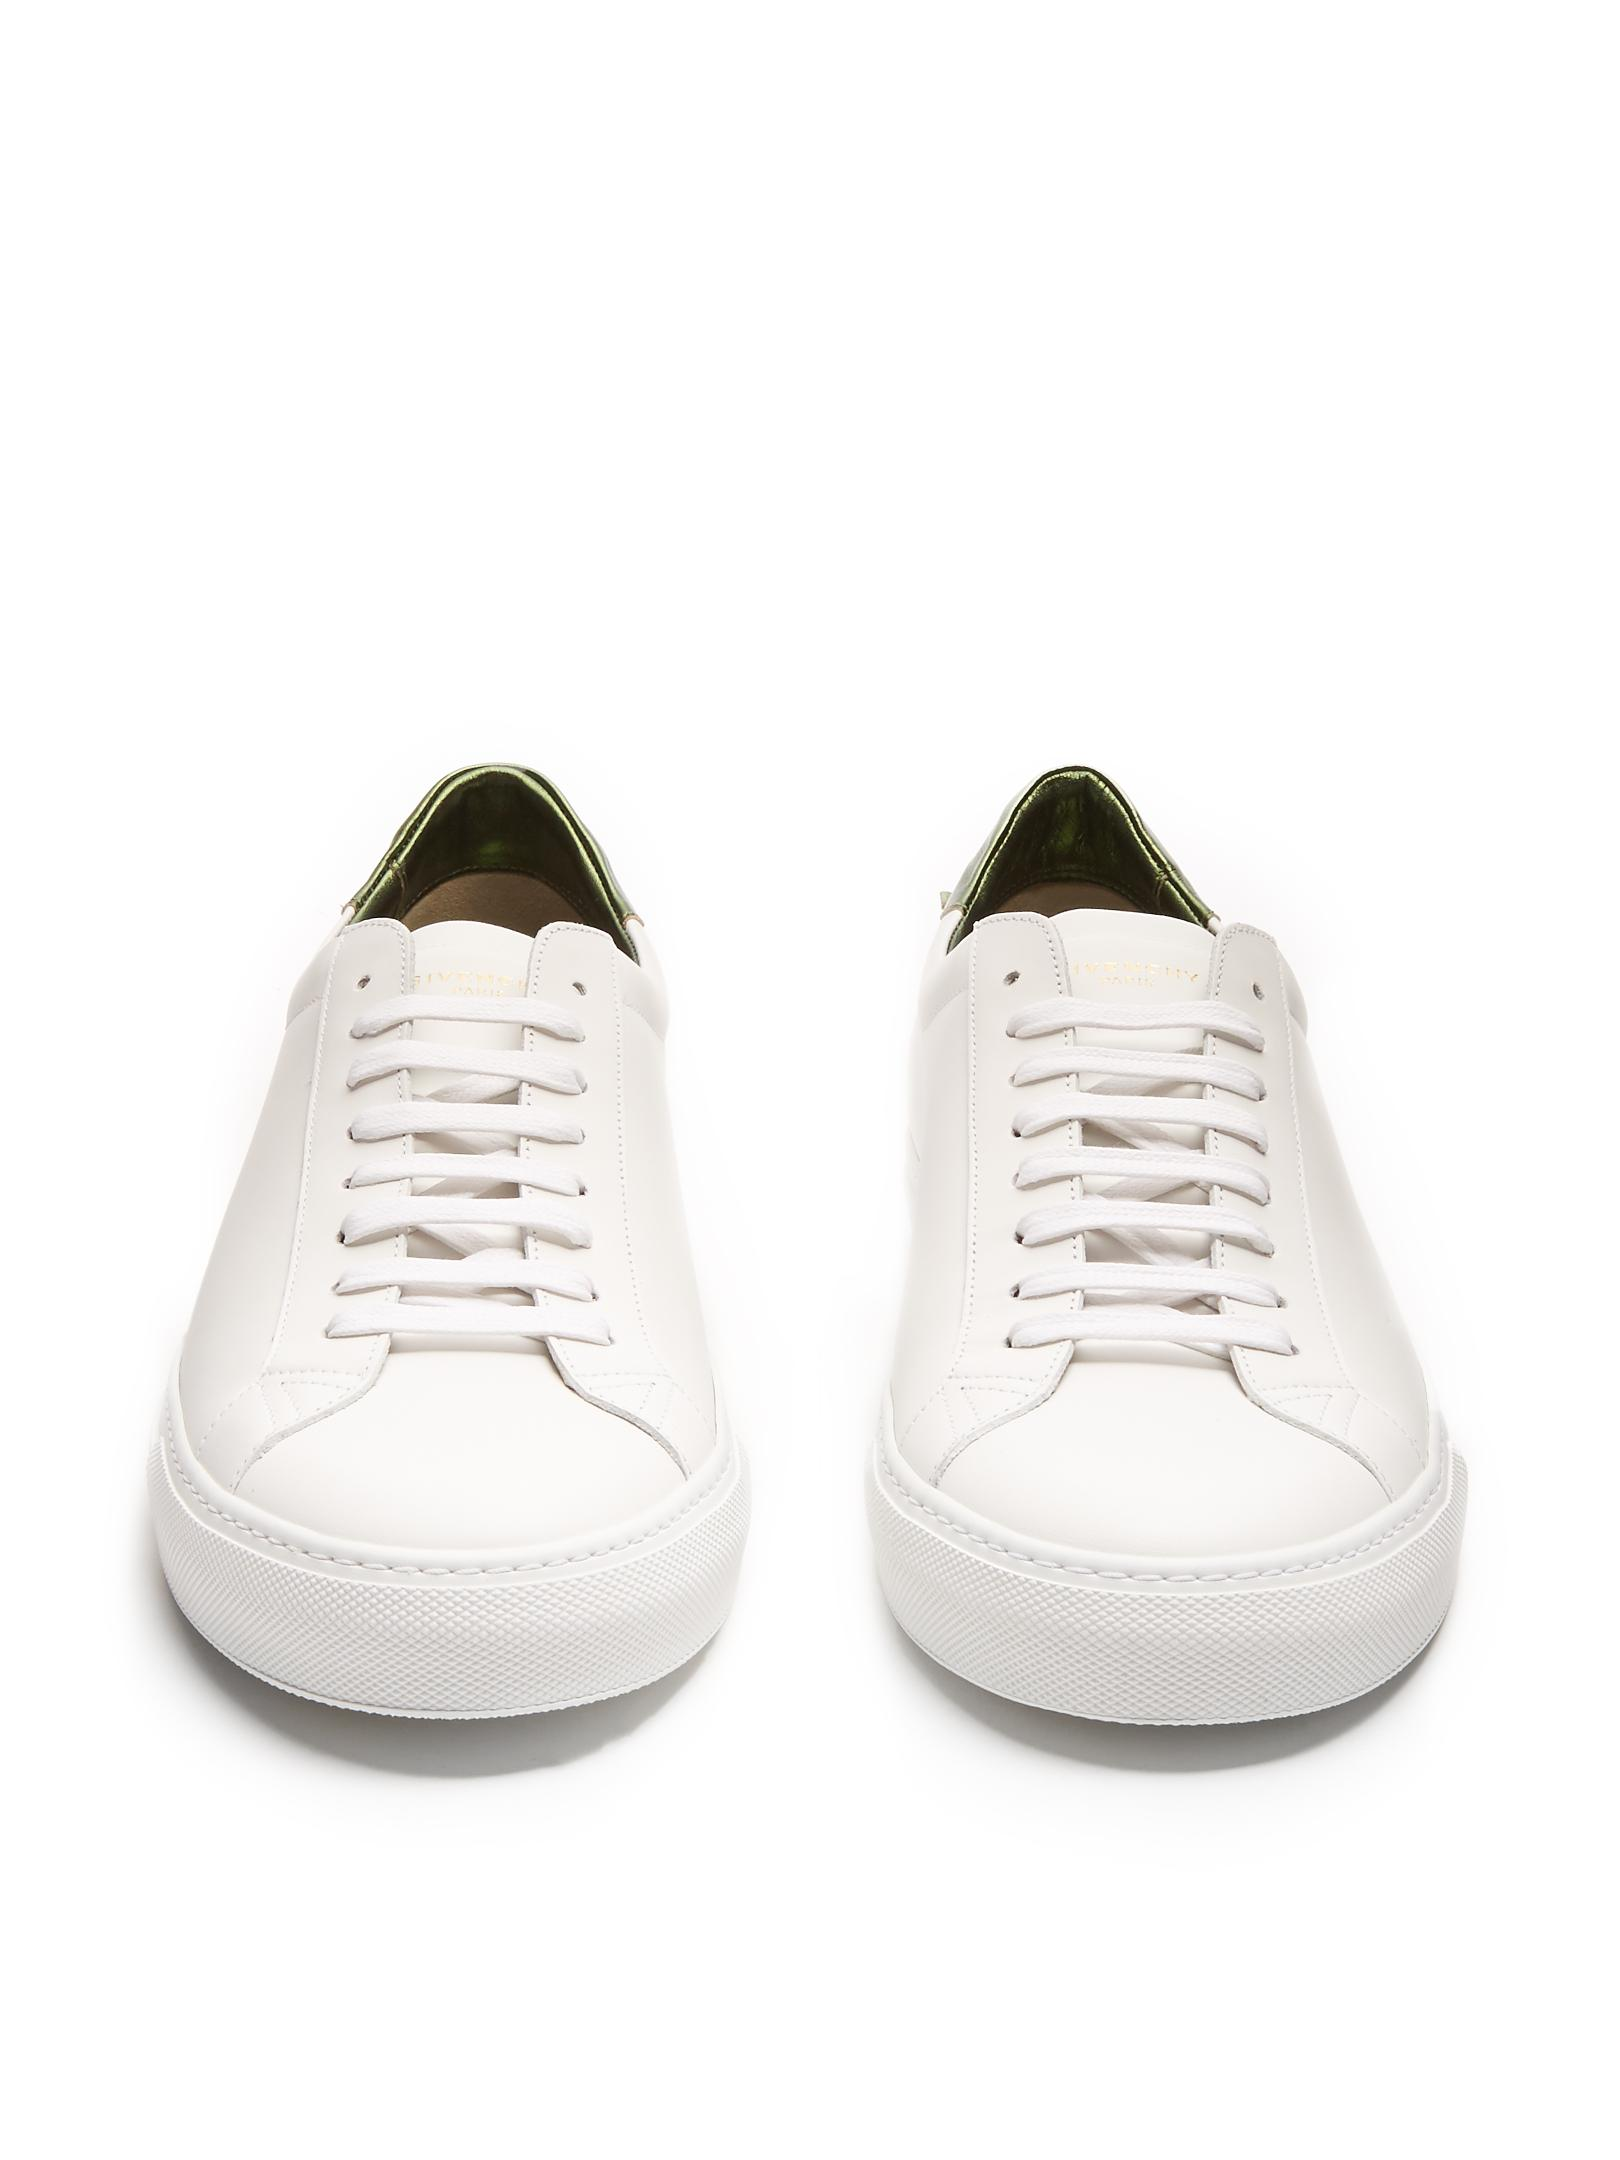 Givenchy Urban Street Low-top Leather Trainers in White for Men